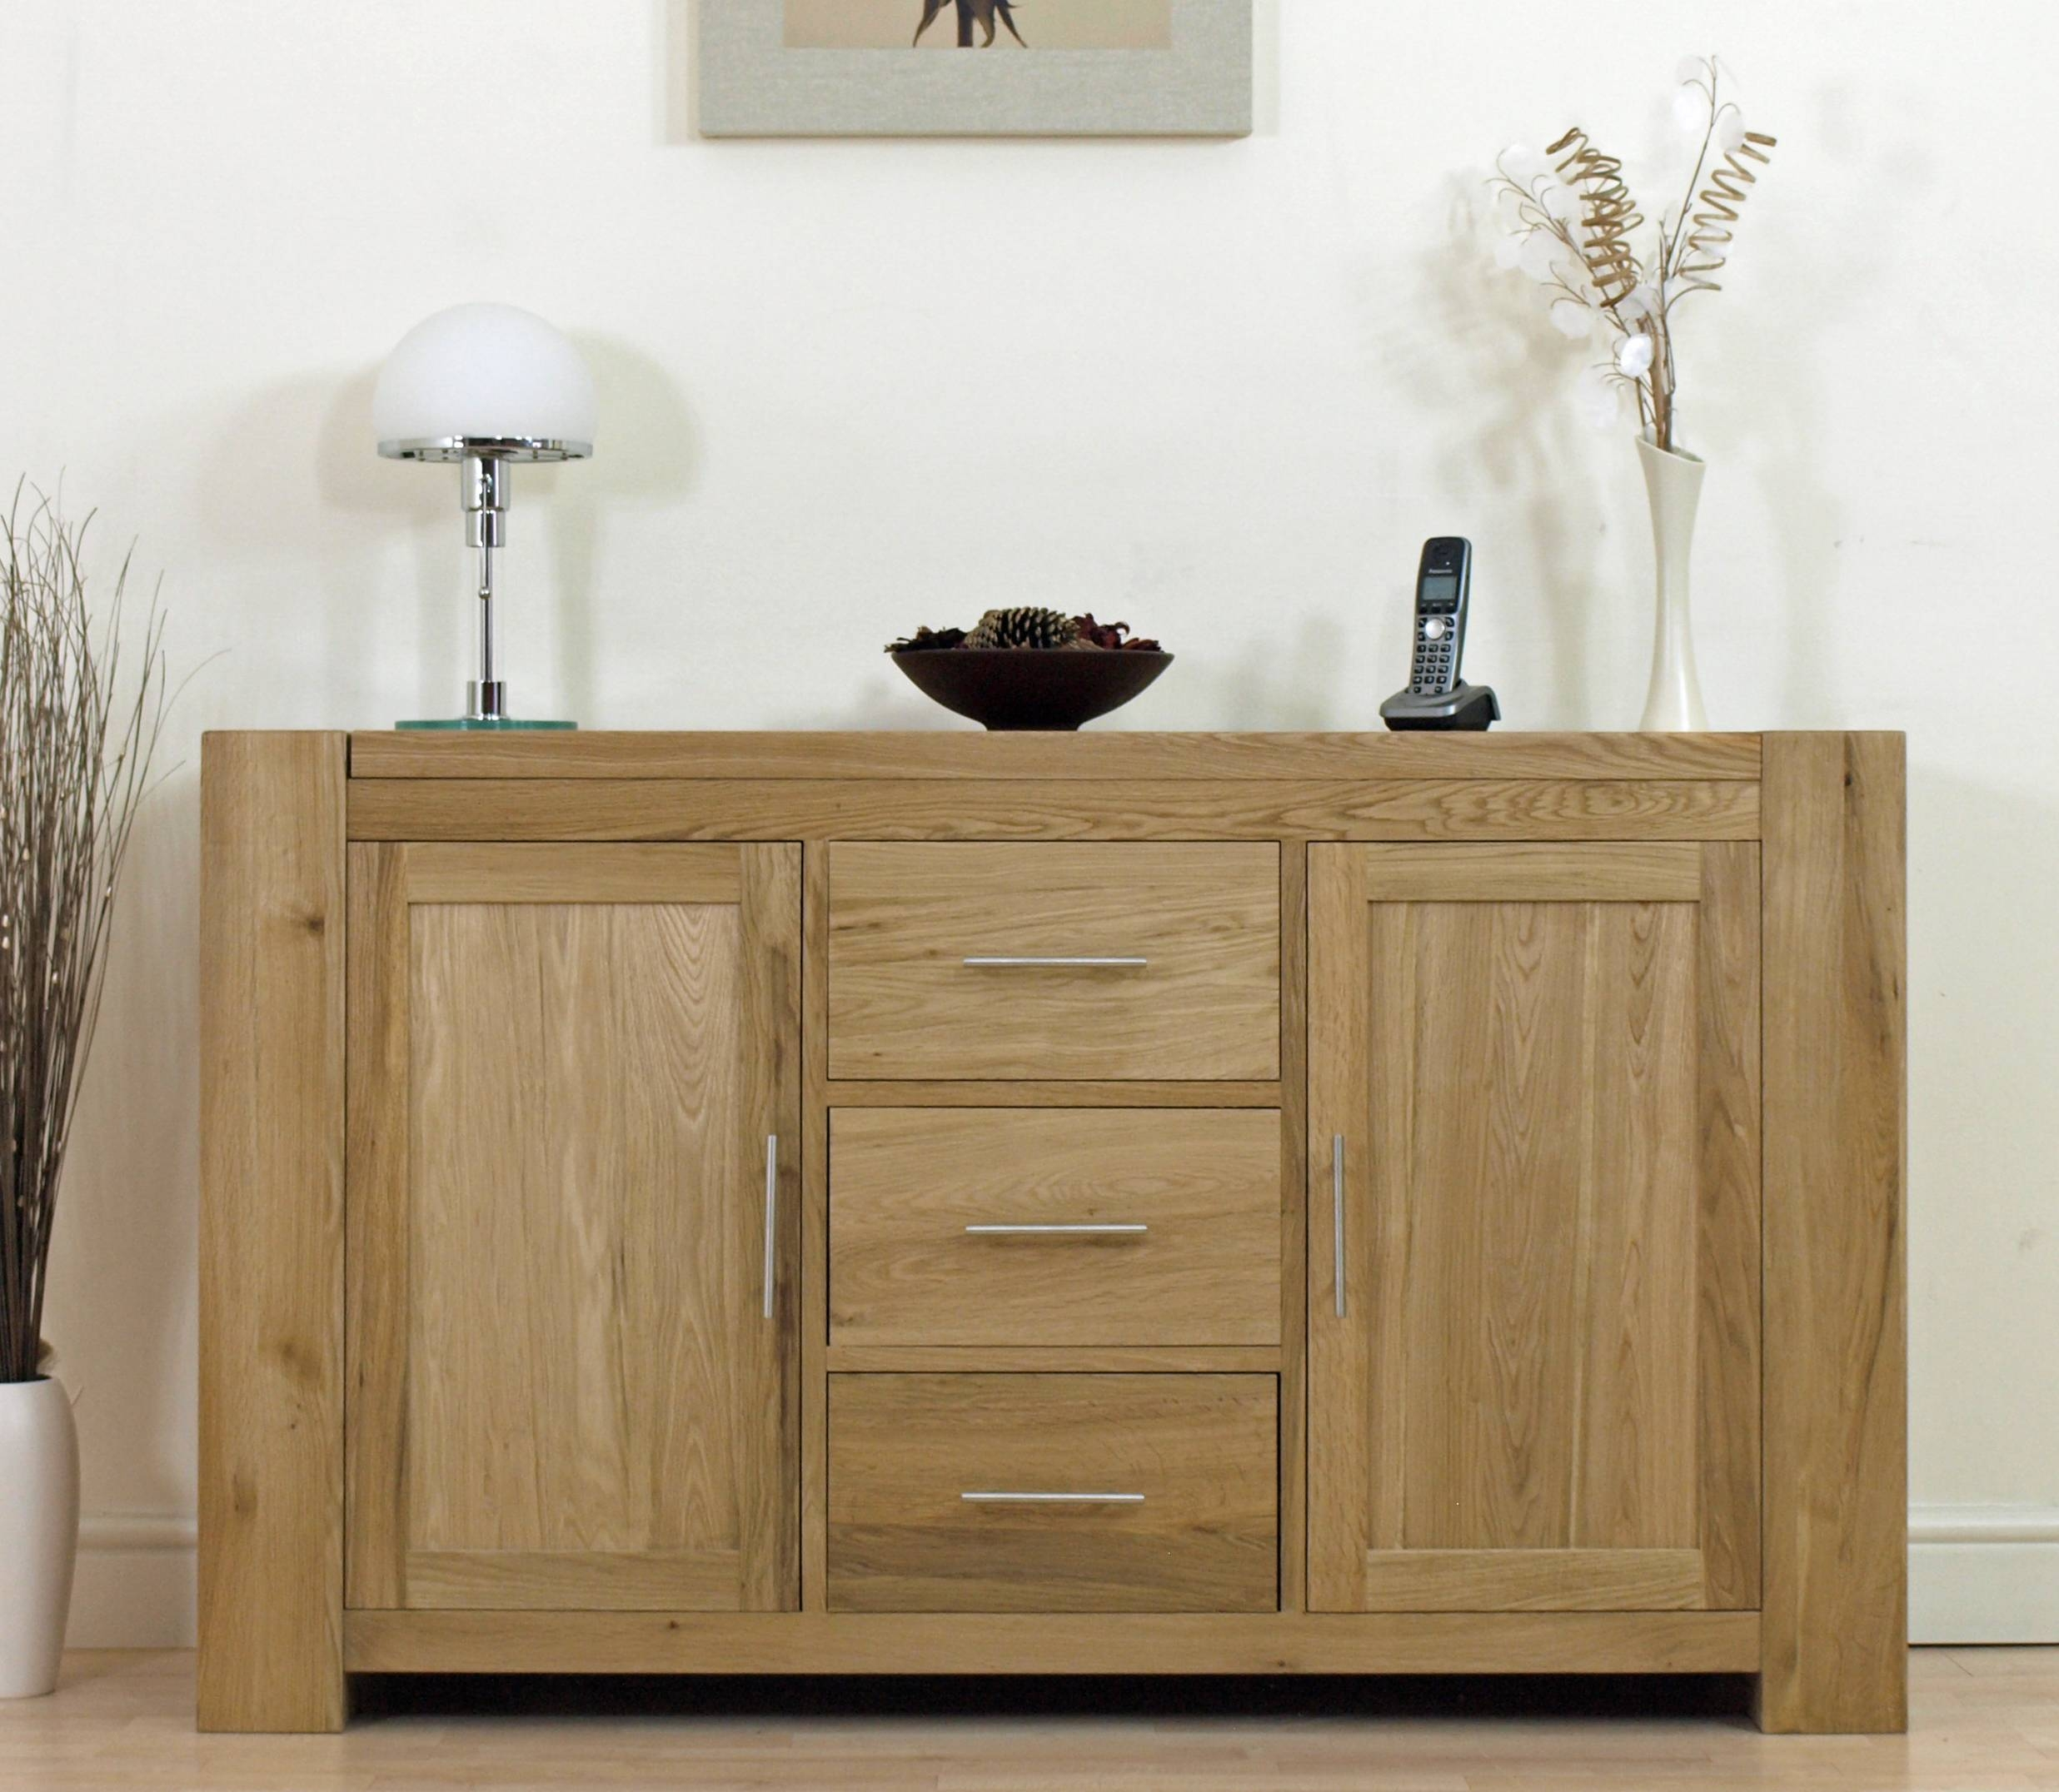 Solid Oak Sideboard Is Your First Choice Living Room Furniture – Hgnv Throughout Sideboards For Living Room (View 18 of 20)